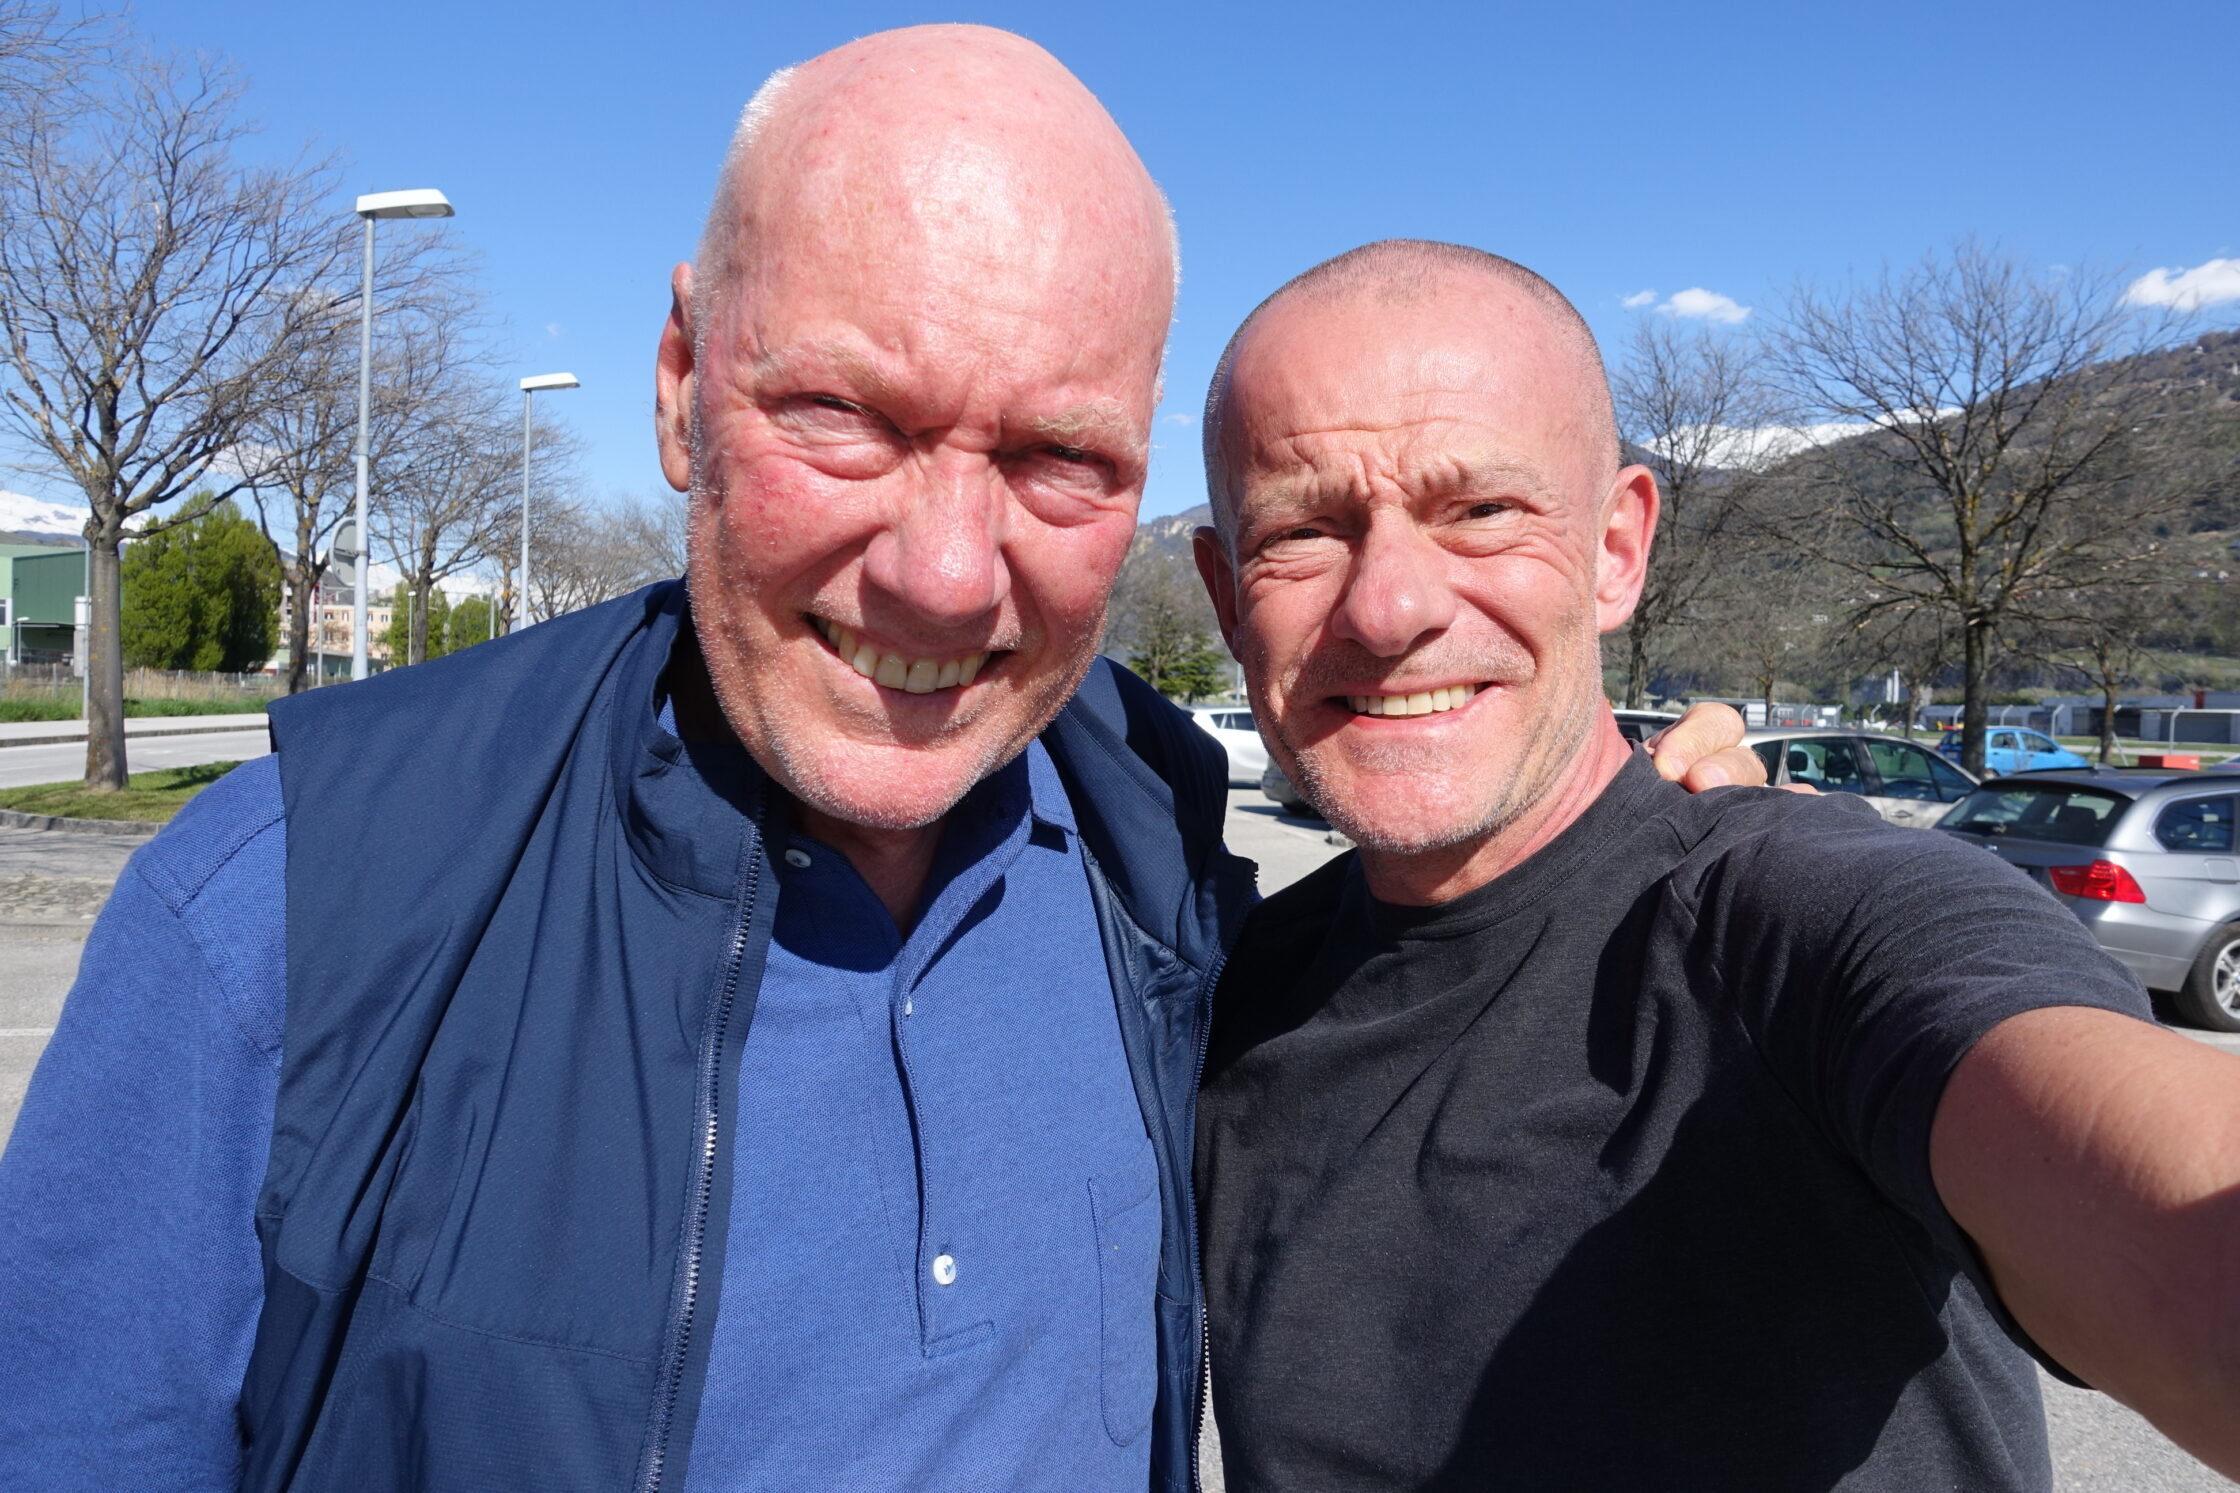 Jean-Claude Biver & Alexander Linz. This is a selfie I took when we met in March this year